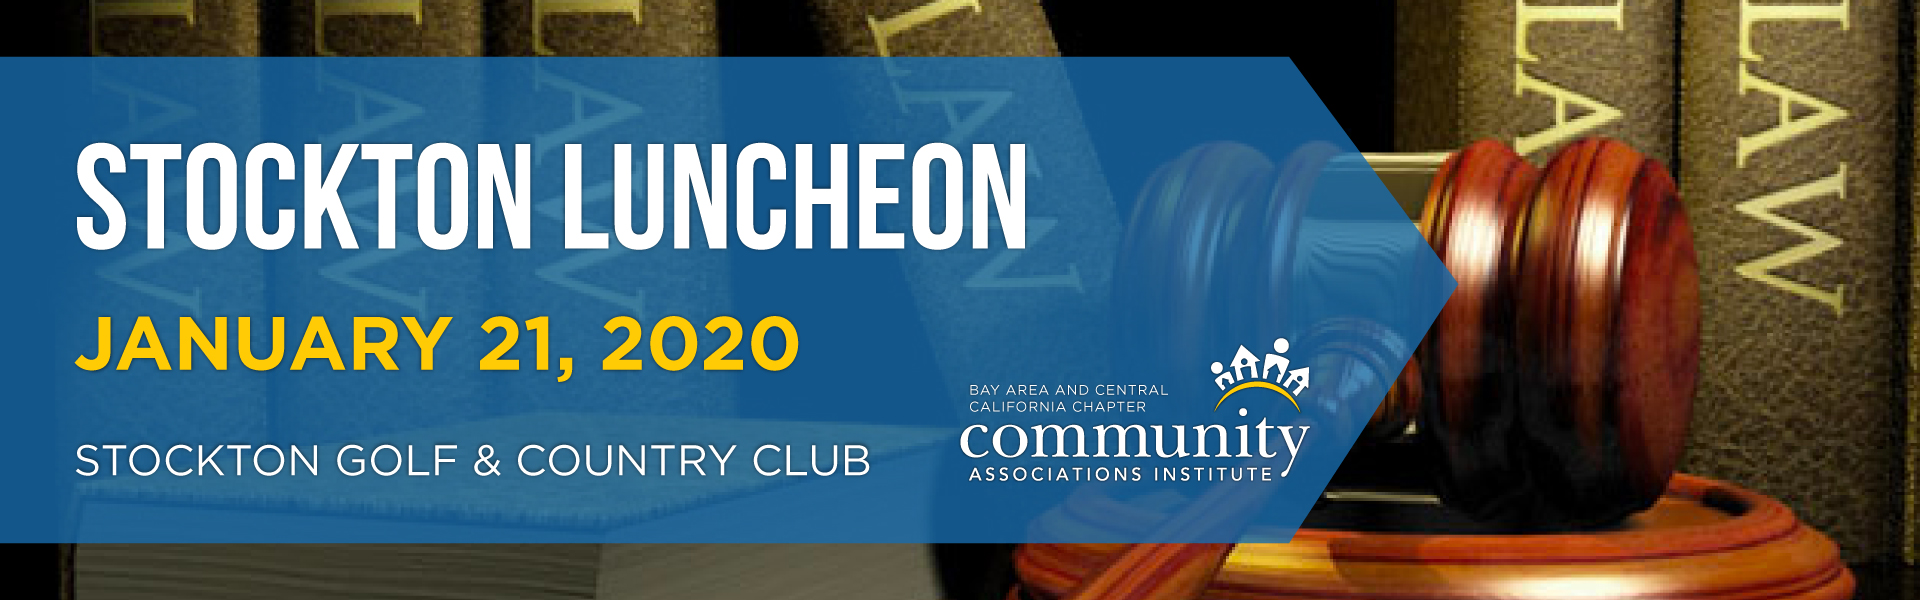 """CAI BayCen Chapter - Stockton Ed. Luncheon """"Annual Legal Update"""""""